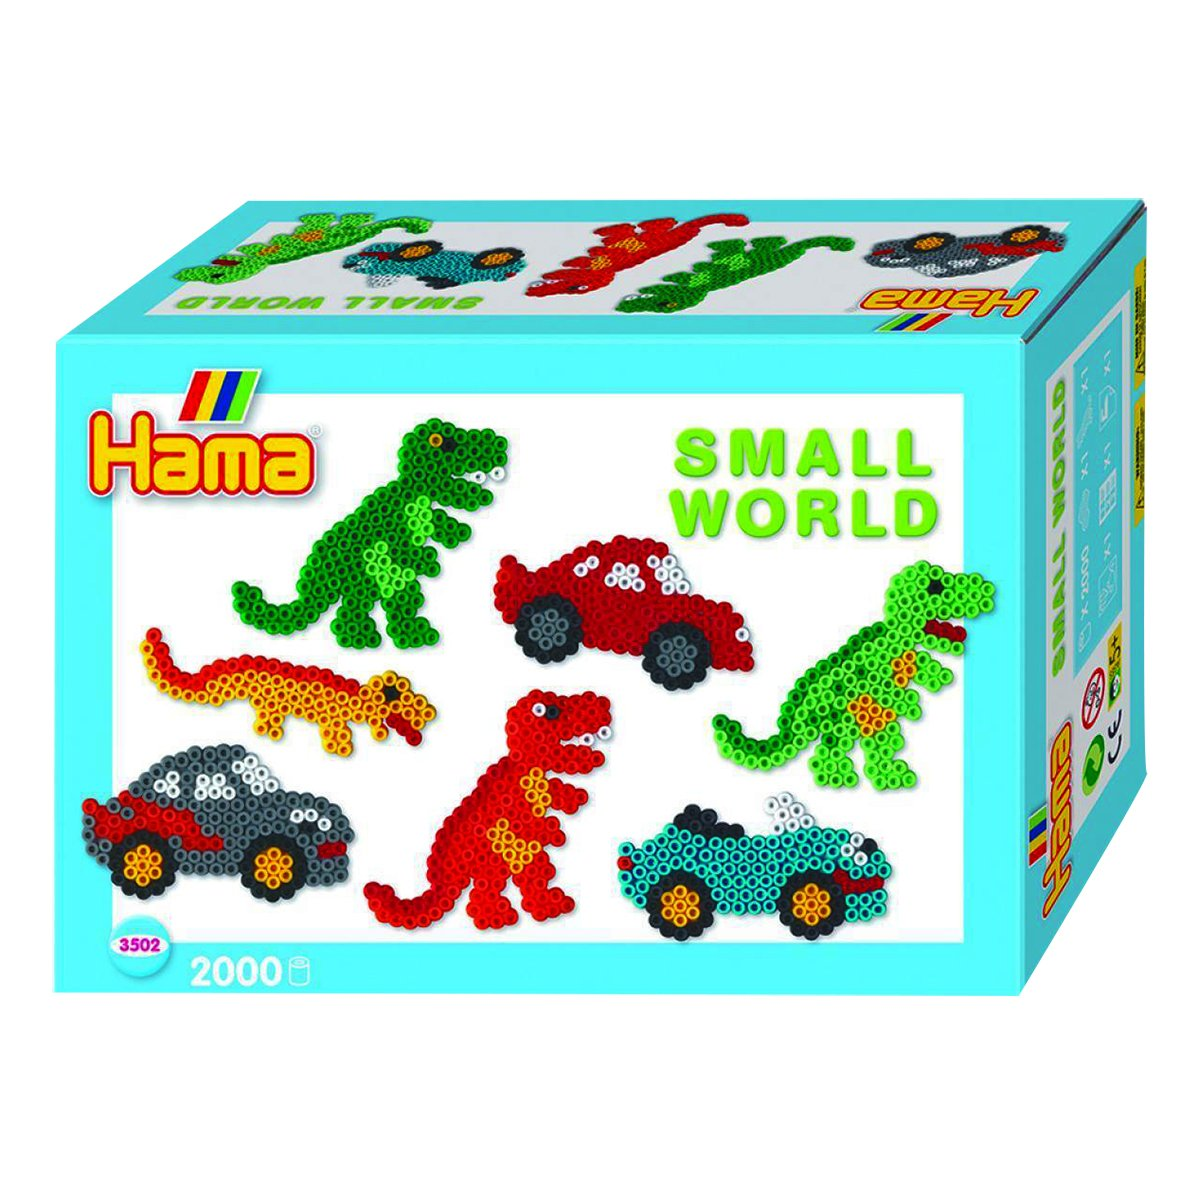 Hama Beads Small World Dinosaur and Car 10.3502